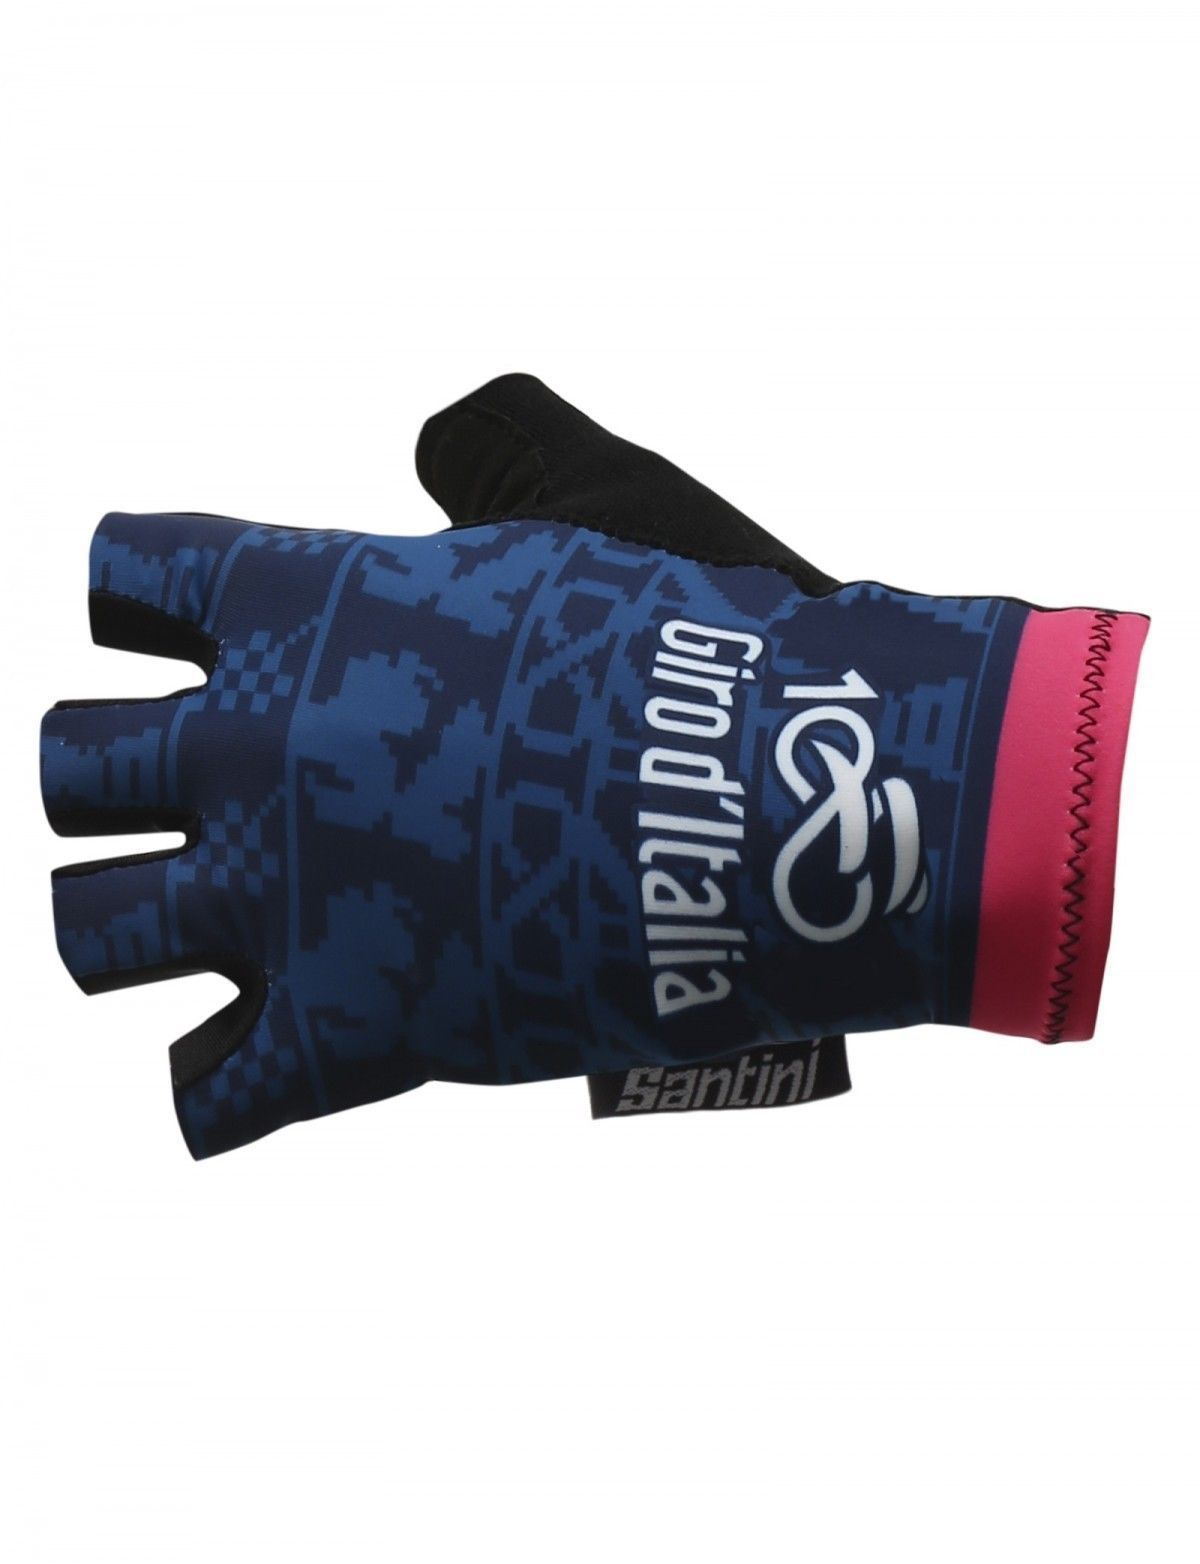 2 and 3 Sardinia Summer CYCLING GLOVES by Santini 2017 Giro d/'Italia Stages 1